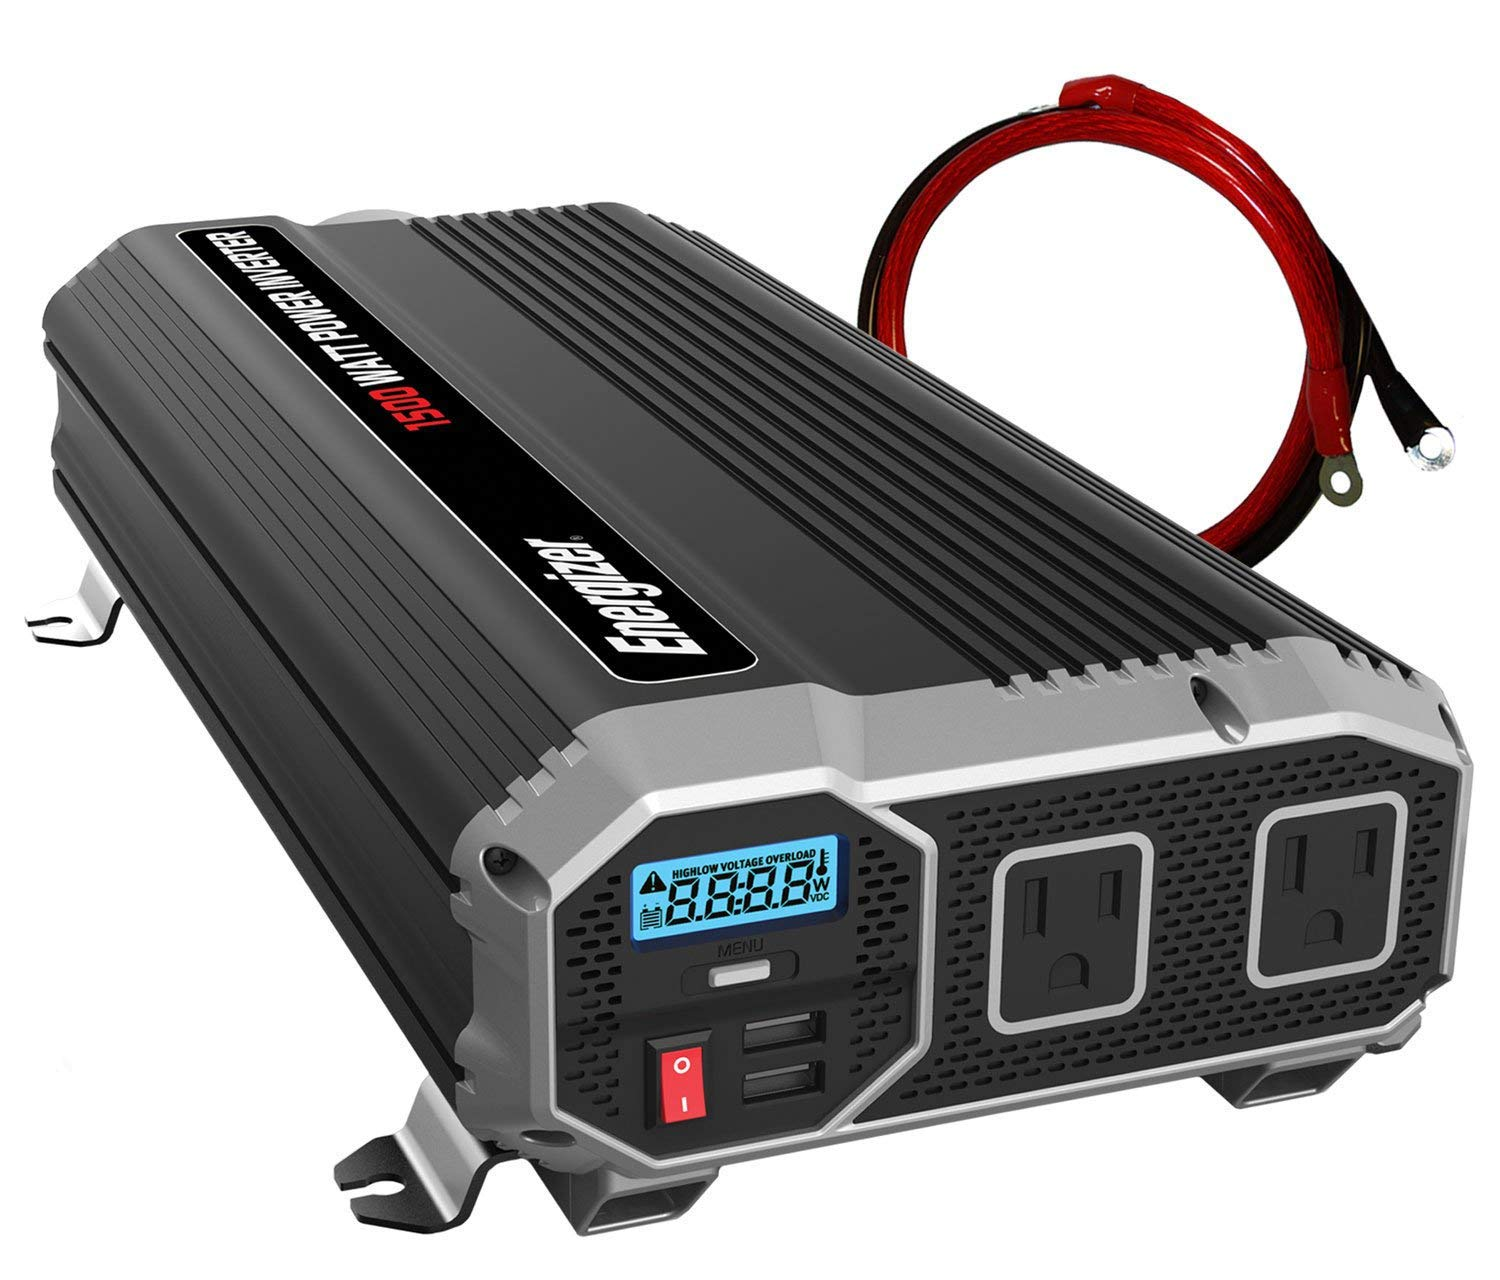 ENERGIZER 1500 Watt 12V Power Inverter, Dual 110V AC Outlets, Automotive Back Up Power Supply Car Inverter